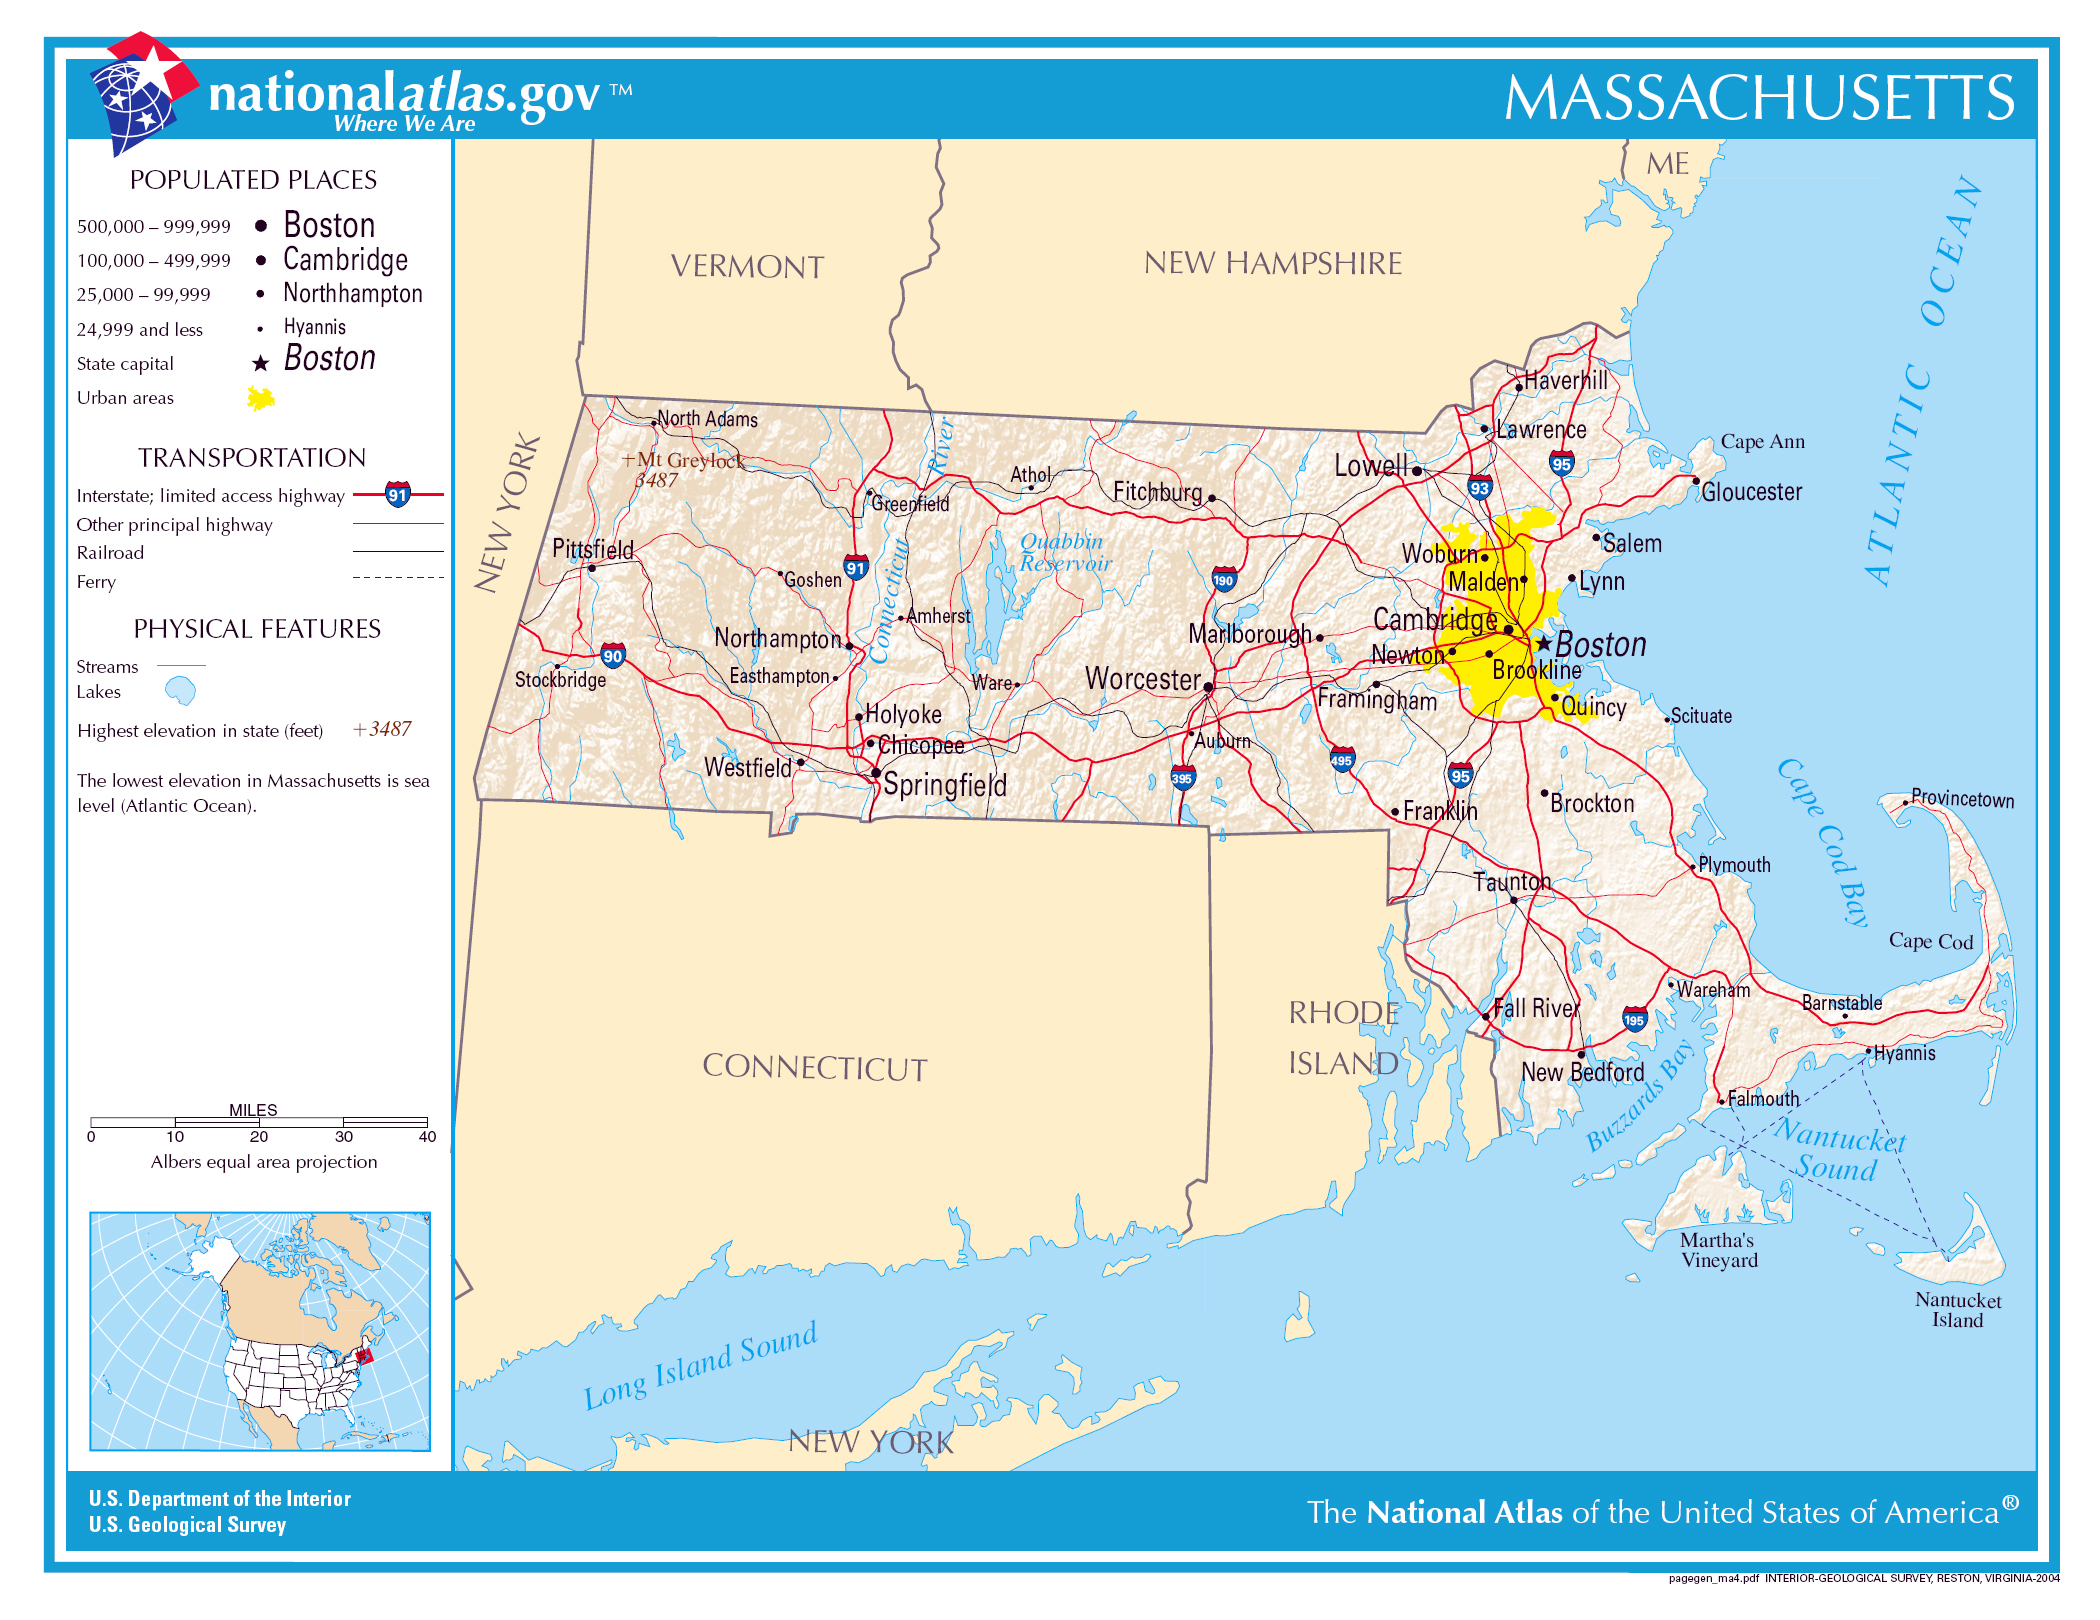 Large detailed map of Machusetts state | Machusetts state ... on postal address in usa, all inclusive vacations in usa, isis in usa, terrain in usa, history in usa, driving distances in usa, range in usa, mailbox in usa, features in usa, seattle location in usa, adult resorts in usa, stats in usa, design in usa, addresses in usa, service in usa, license plate in usa, calendar in usa, driving directions usa,